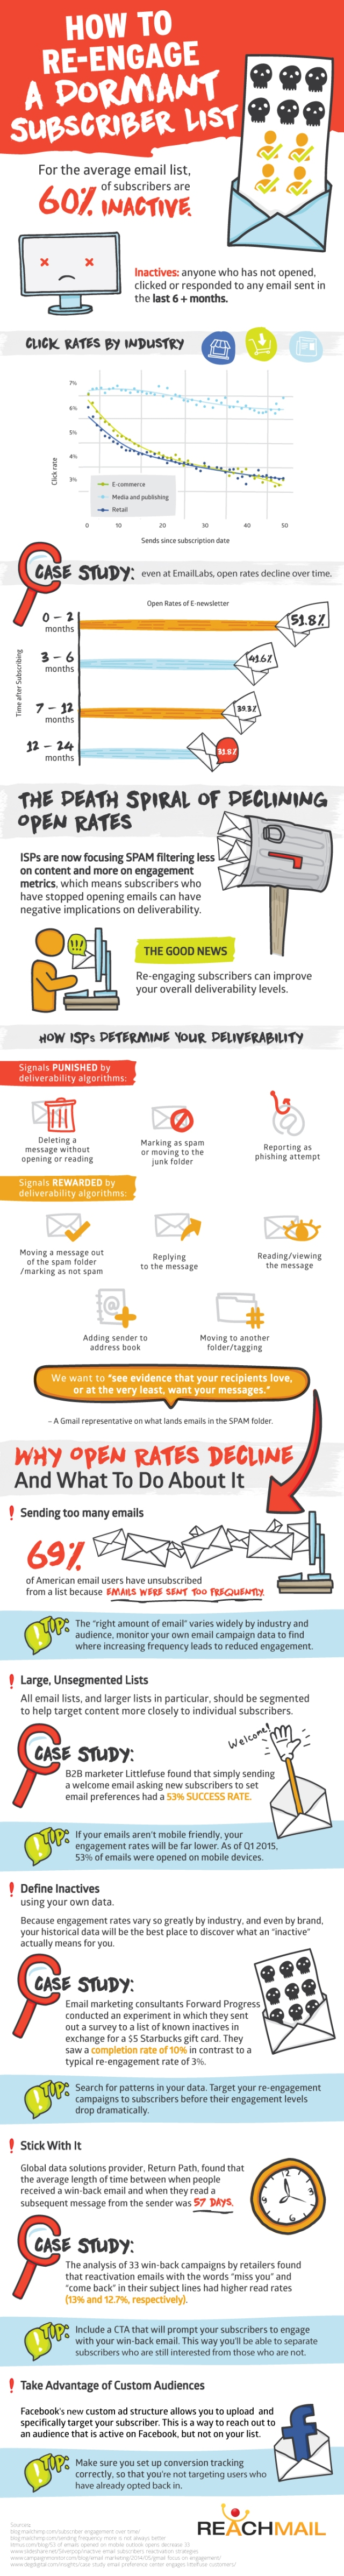 Email Open Rates Falling How to Re-engage a Dormant Subscriber List